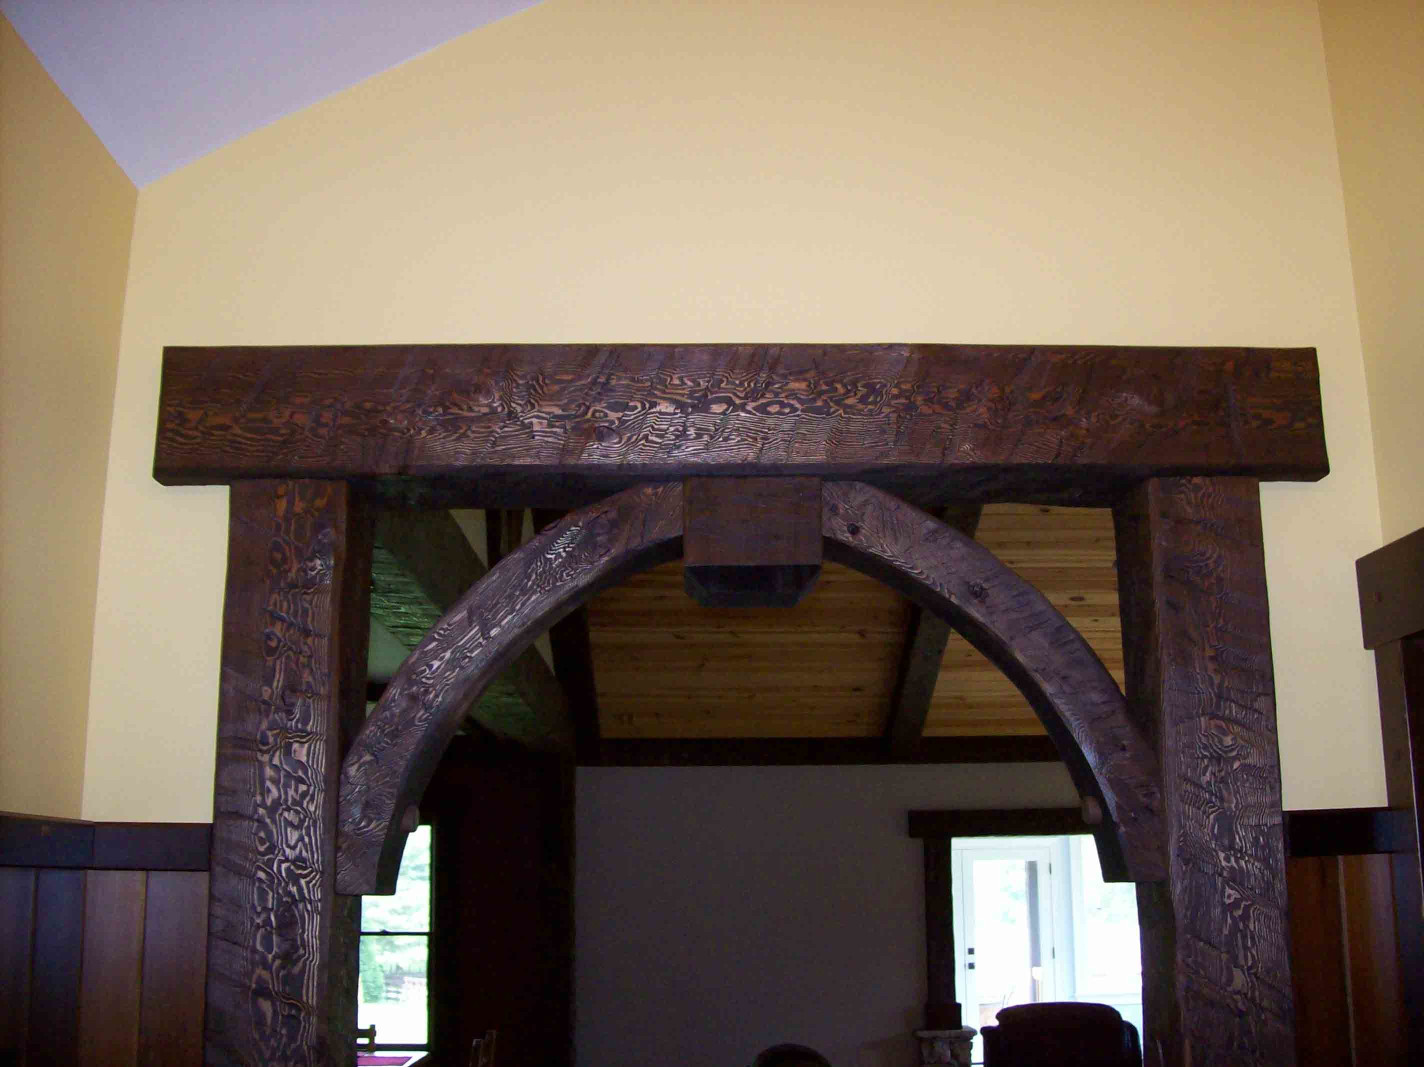 The wood beams, wood posts, and wood braces add elegance to this entry.